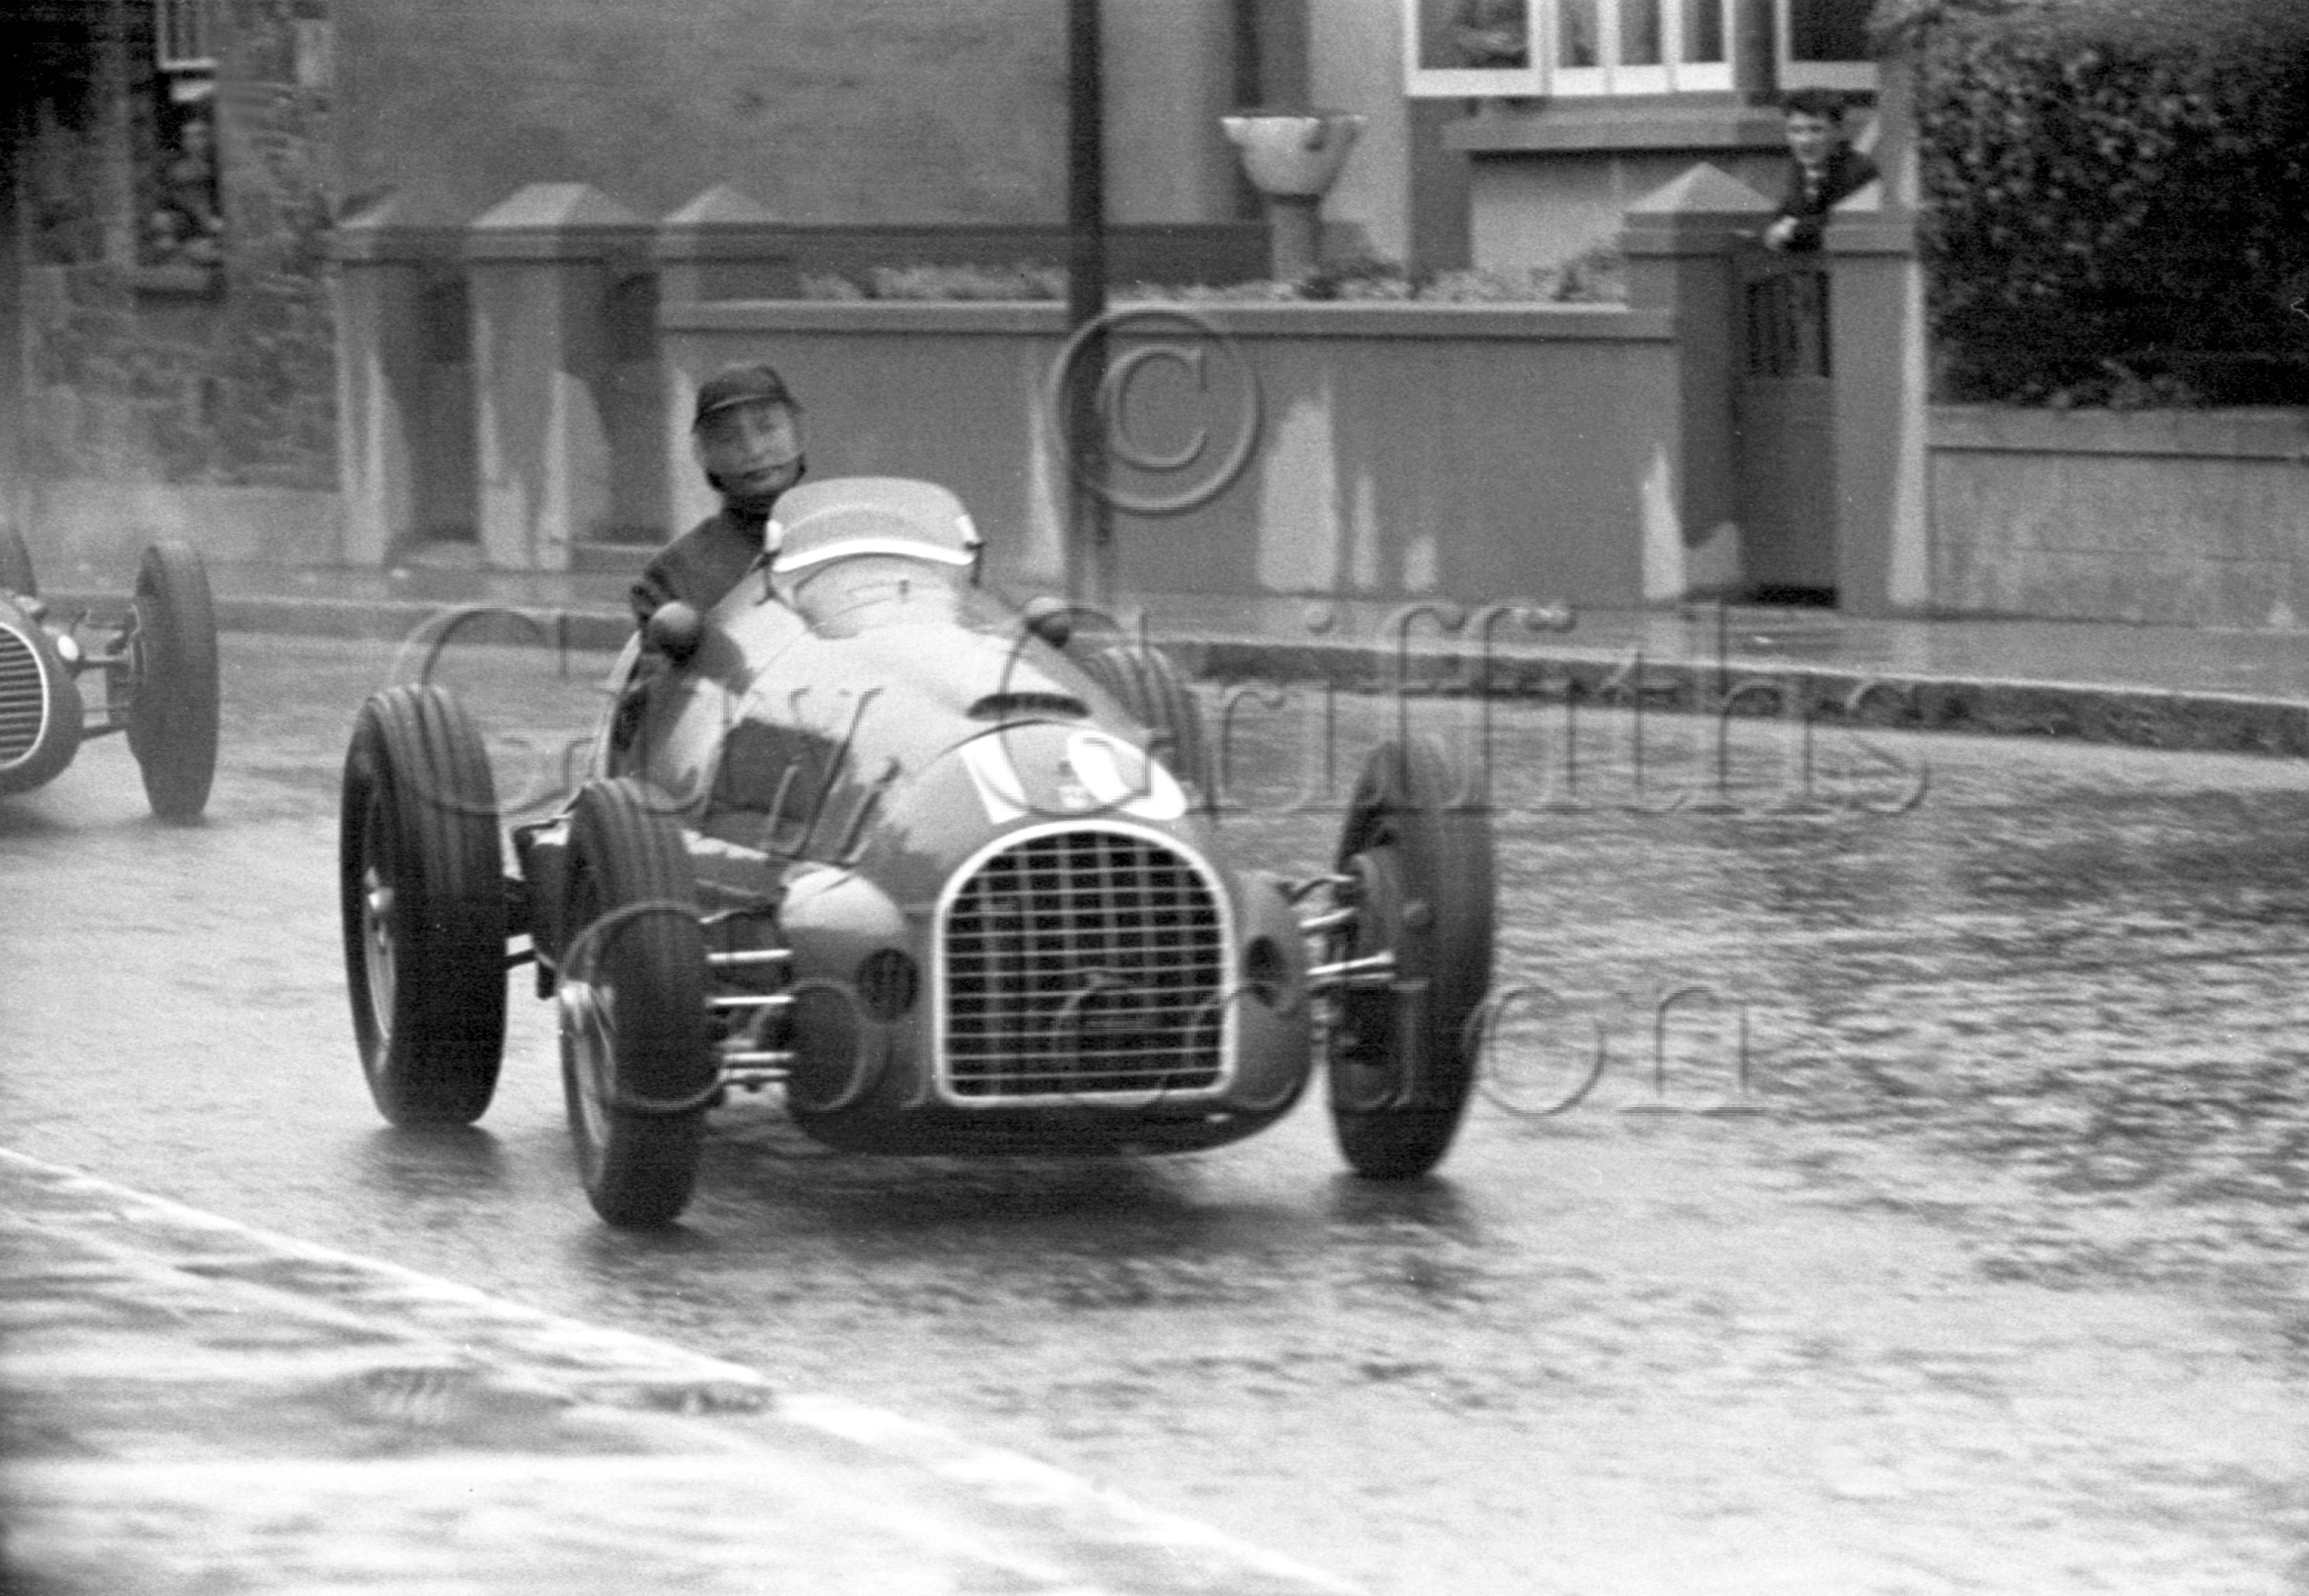 13-353–P-N-Whitehead–Ferrari–Jersey–28-04-1949.jpg - The Guy Griffiths Collection